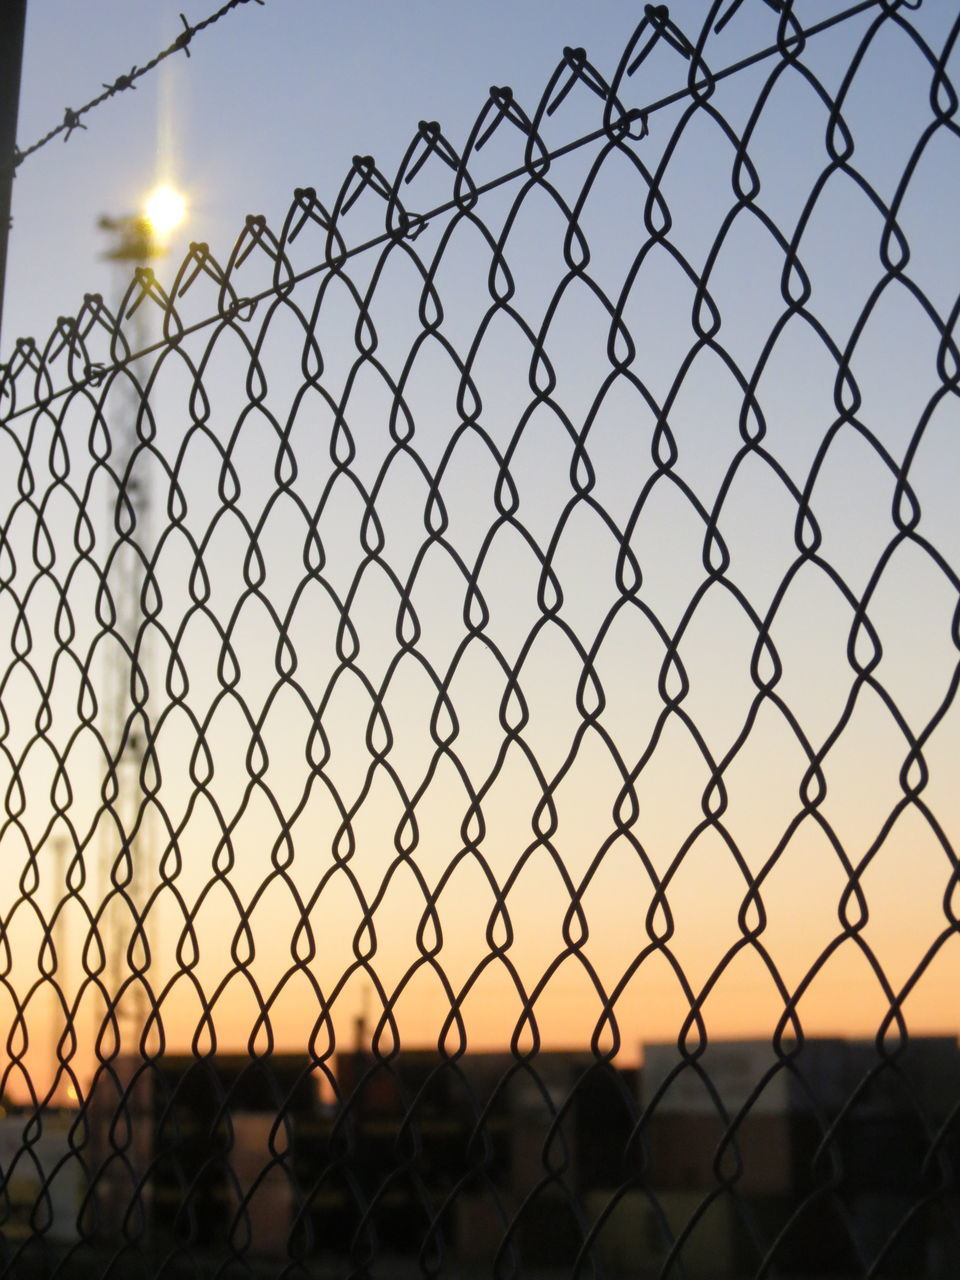 fence, chainlink fence, protection, security, safety, metal, sky, sunset, outdoors, no people, clear sky, technology, day, close-up